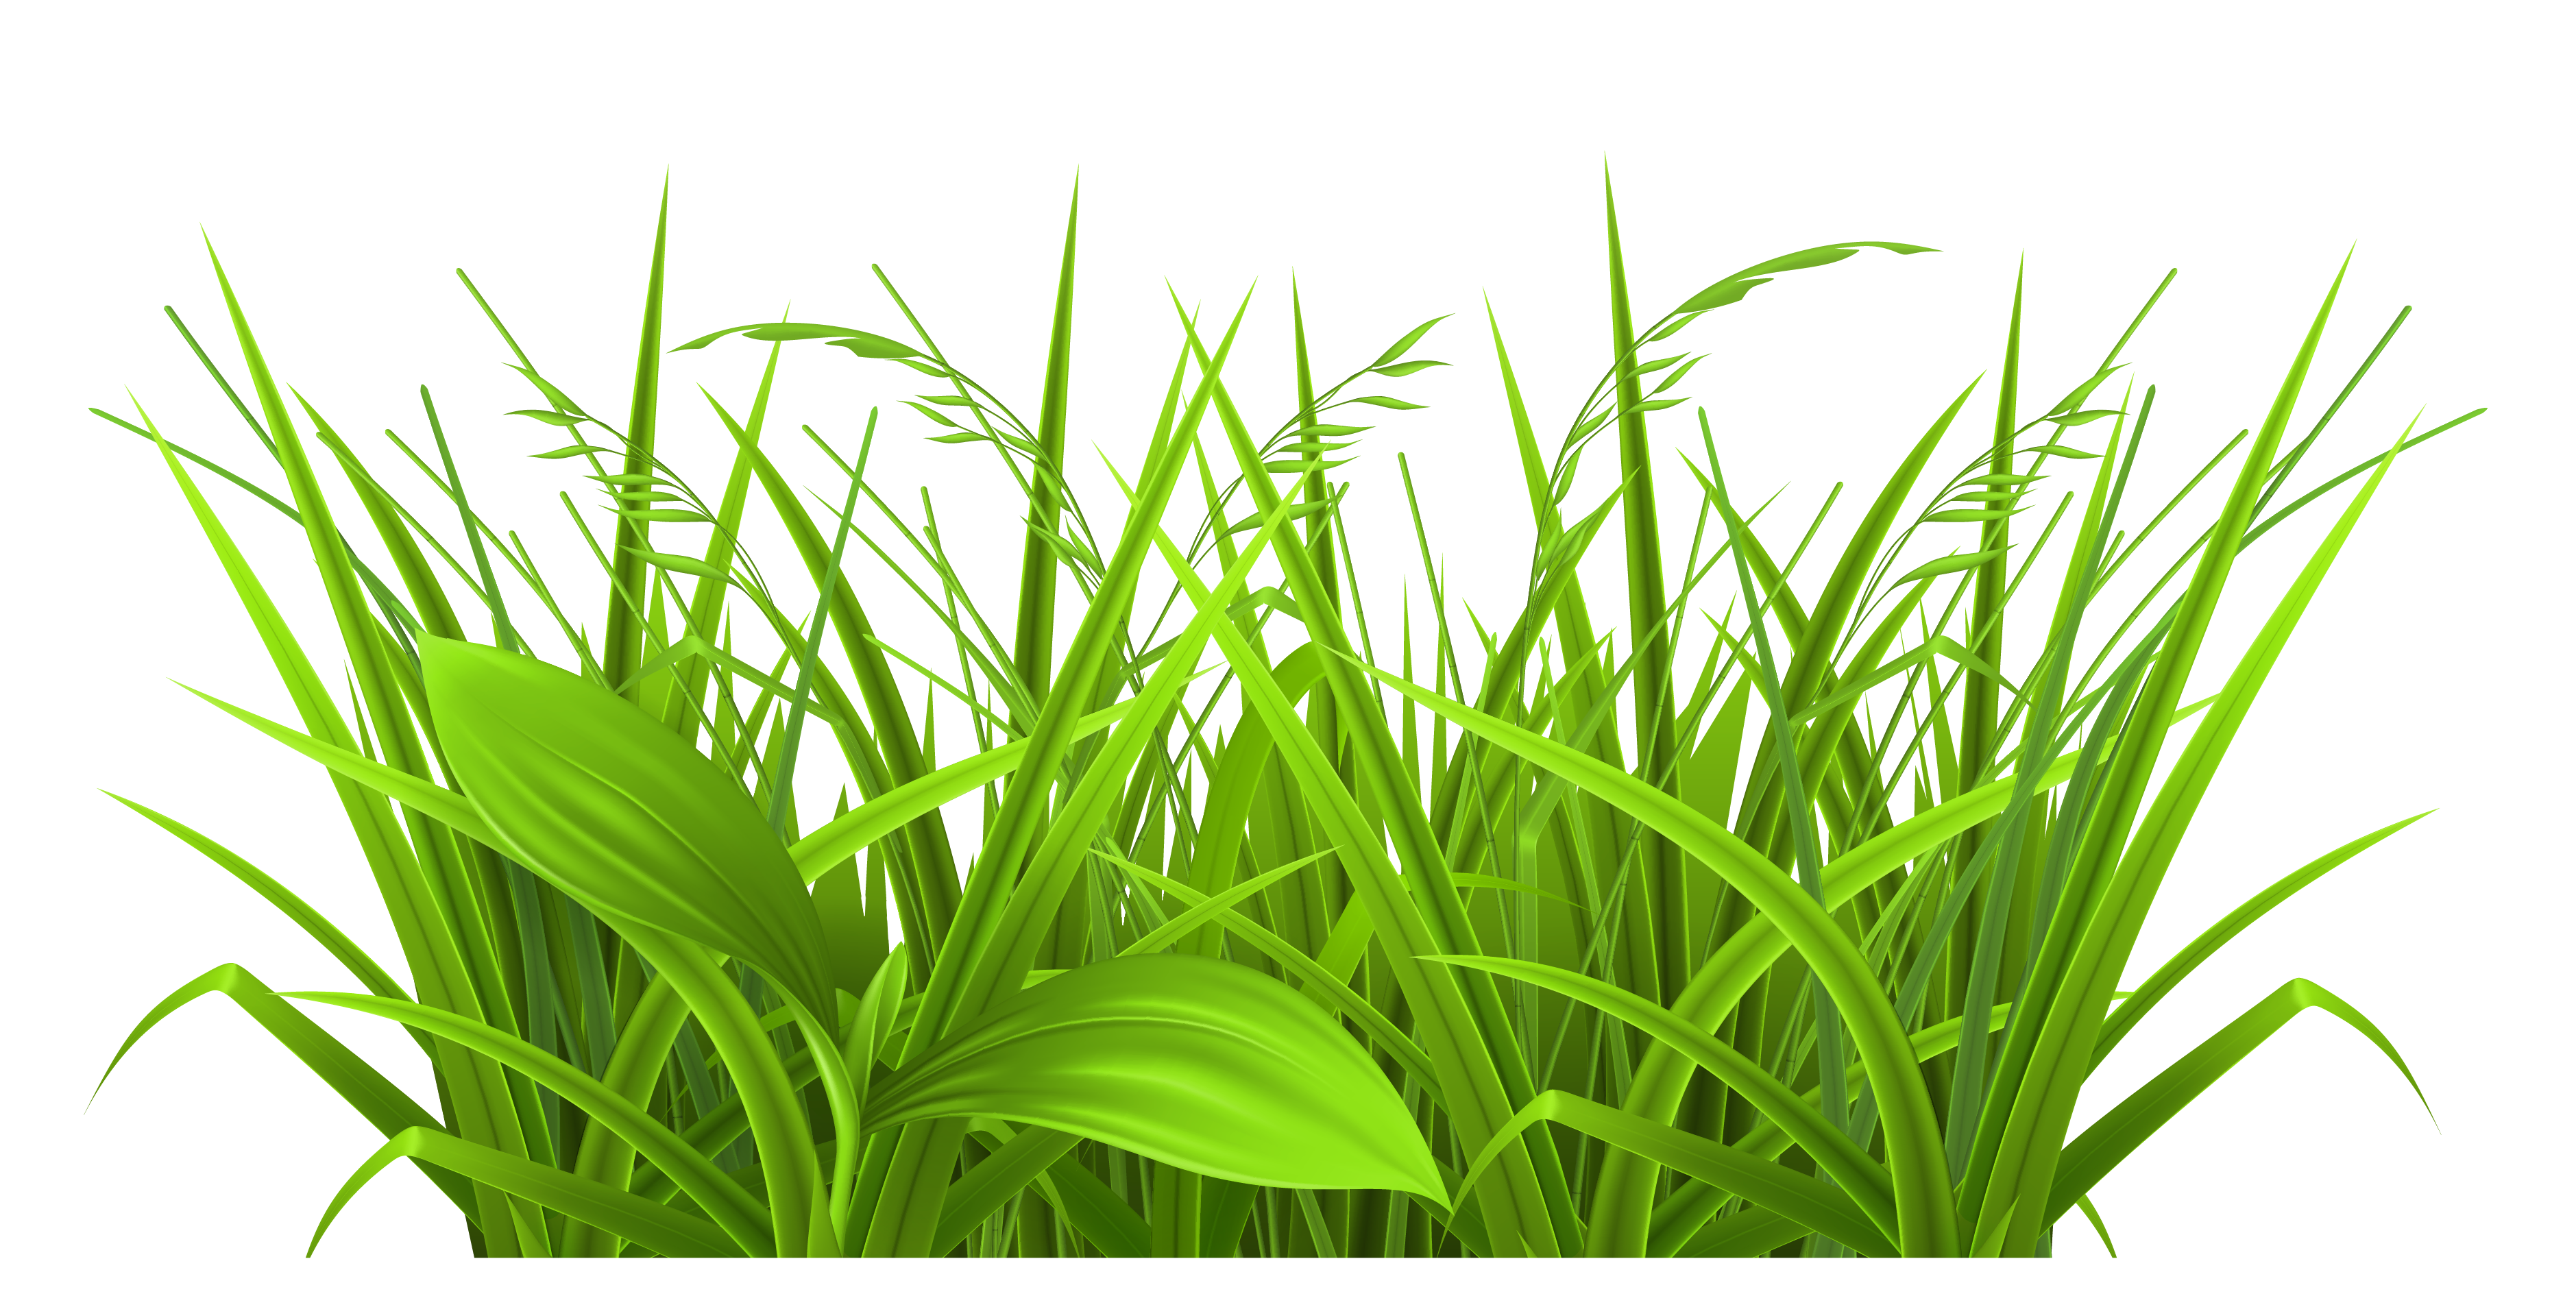 Grass clip art free clipart images 2 3